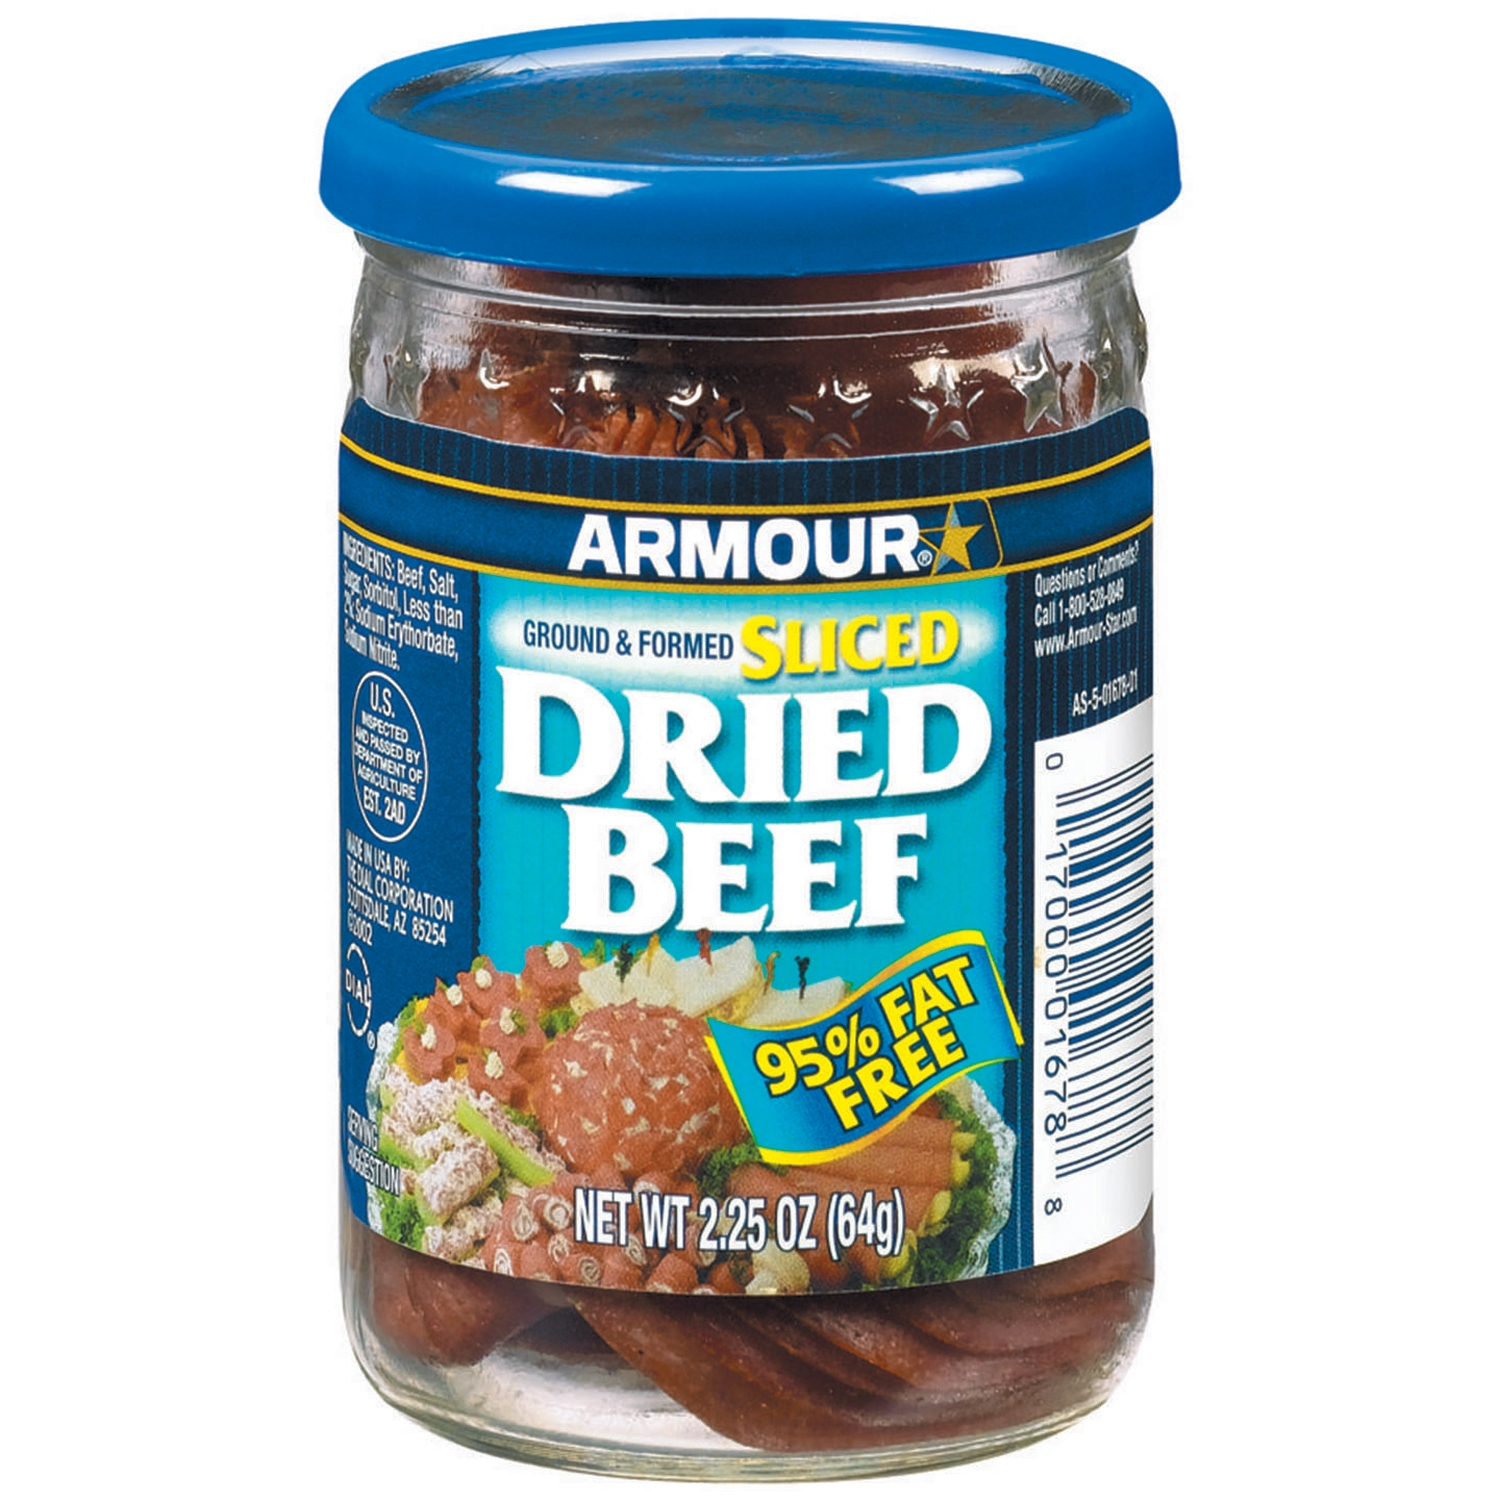 Armour Sliced 95% Fat Free Beef Dried, 2.25 oz by Pinnacle Foods